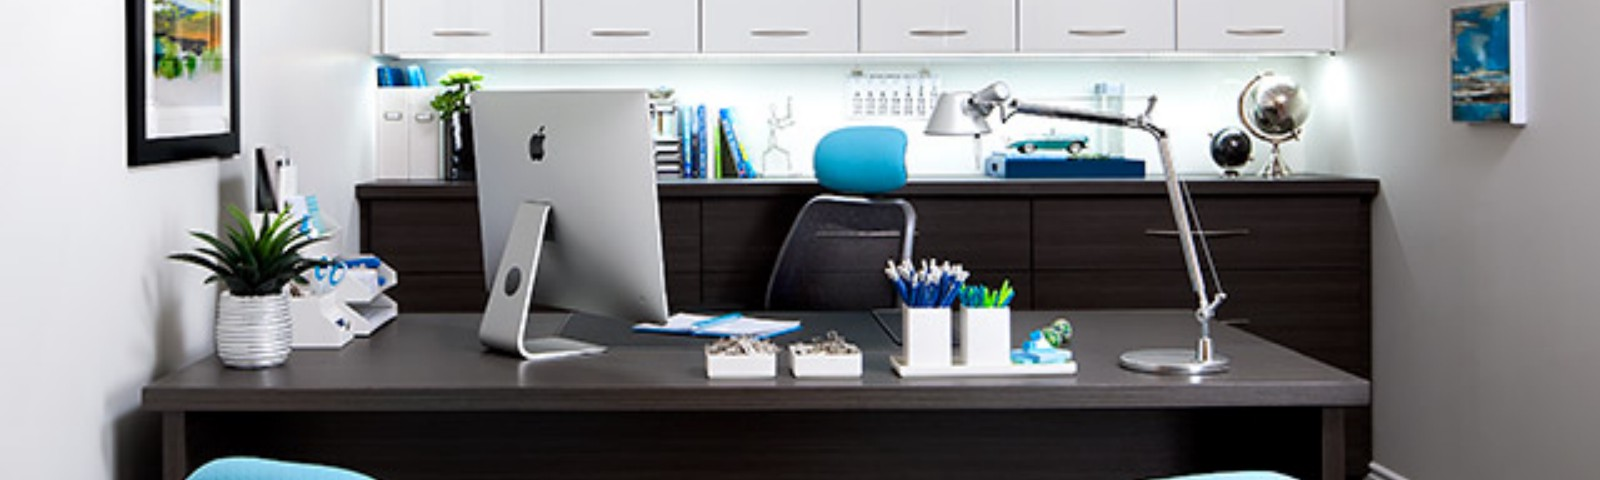 http://www.organizedinteriors.com/products/home-office-entertainment/